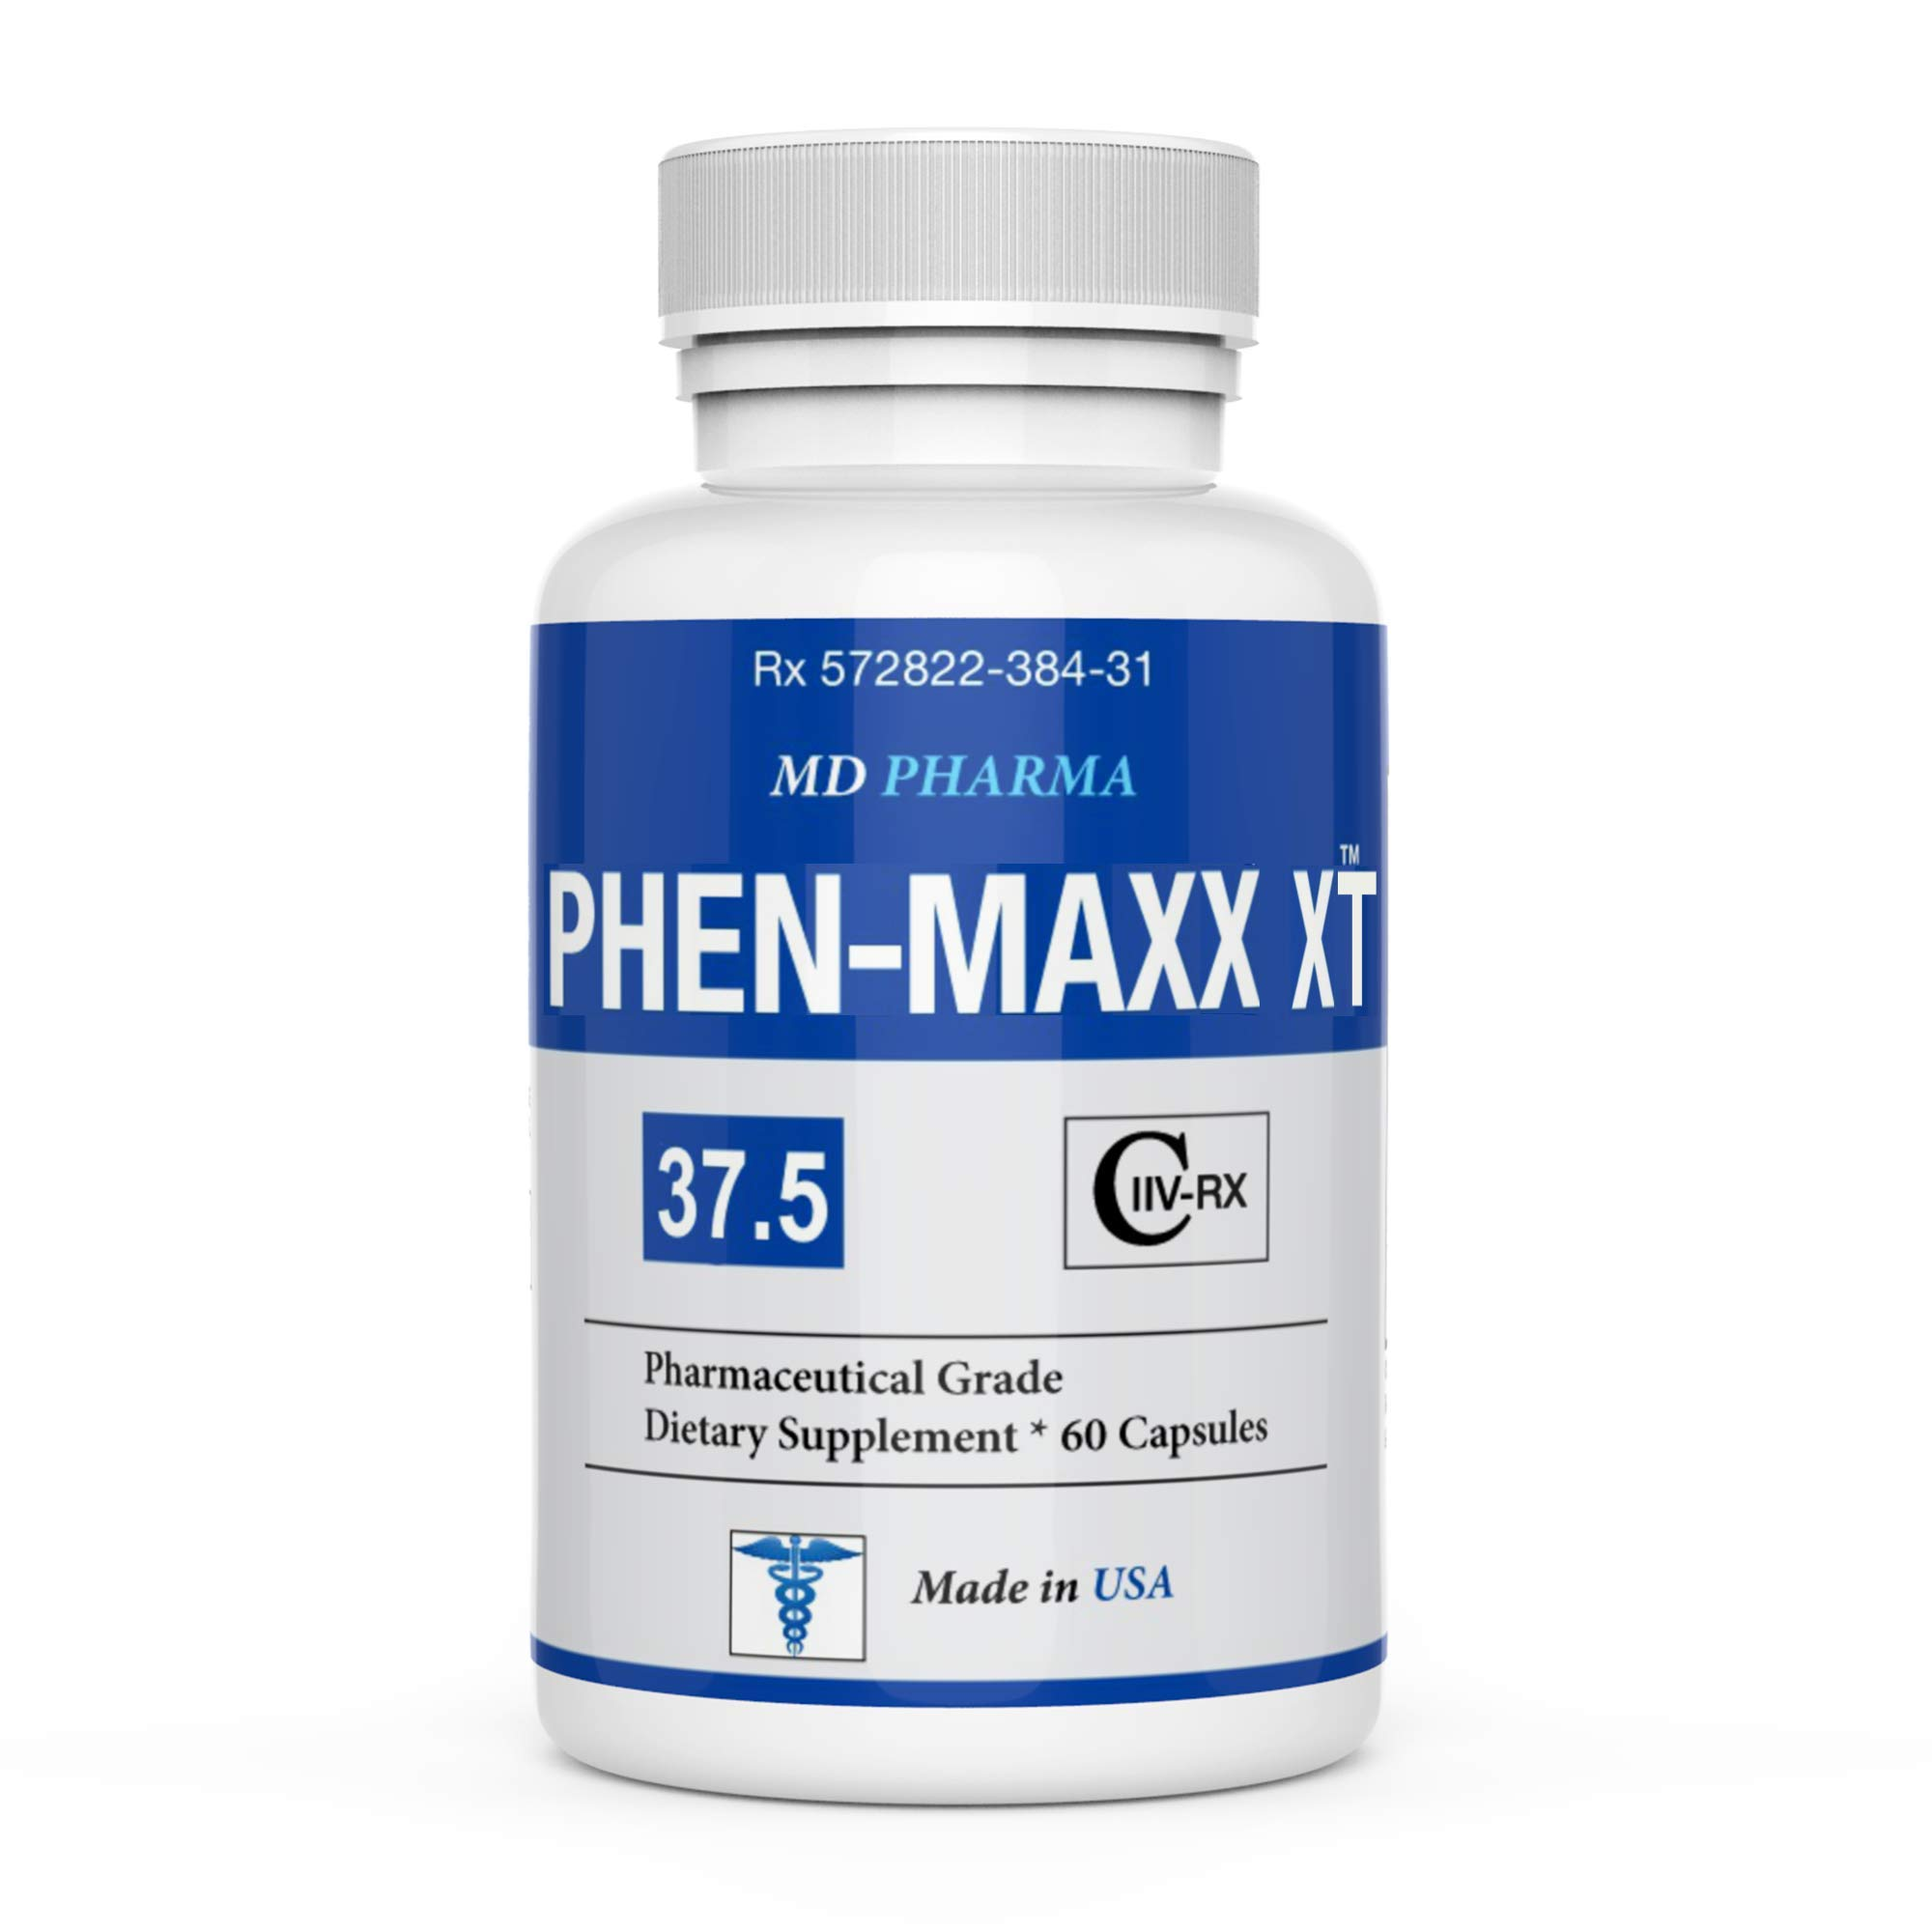 PHEN-MAXX XR 37.5 ® (Pharmaceutical Grade OTC - Over The Counter - Weight Loss Diet Pills) - Advanced Appetite Suppressant - Increase Energy - Clinically Proven Ingredients